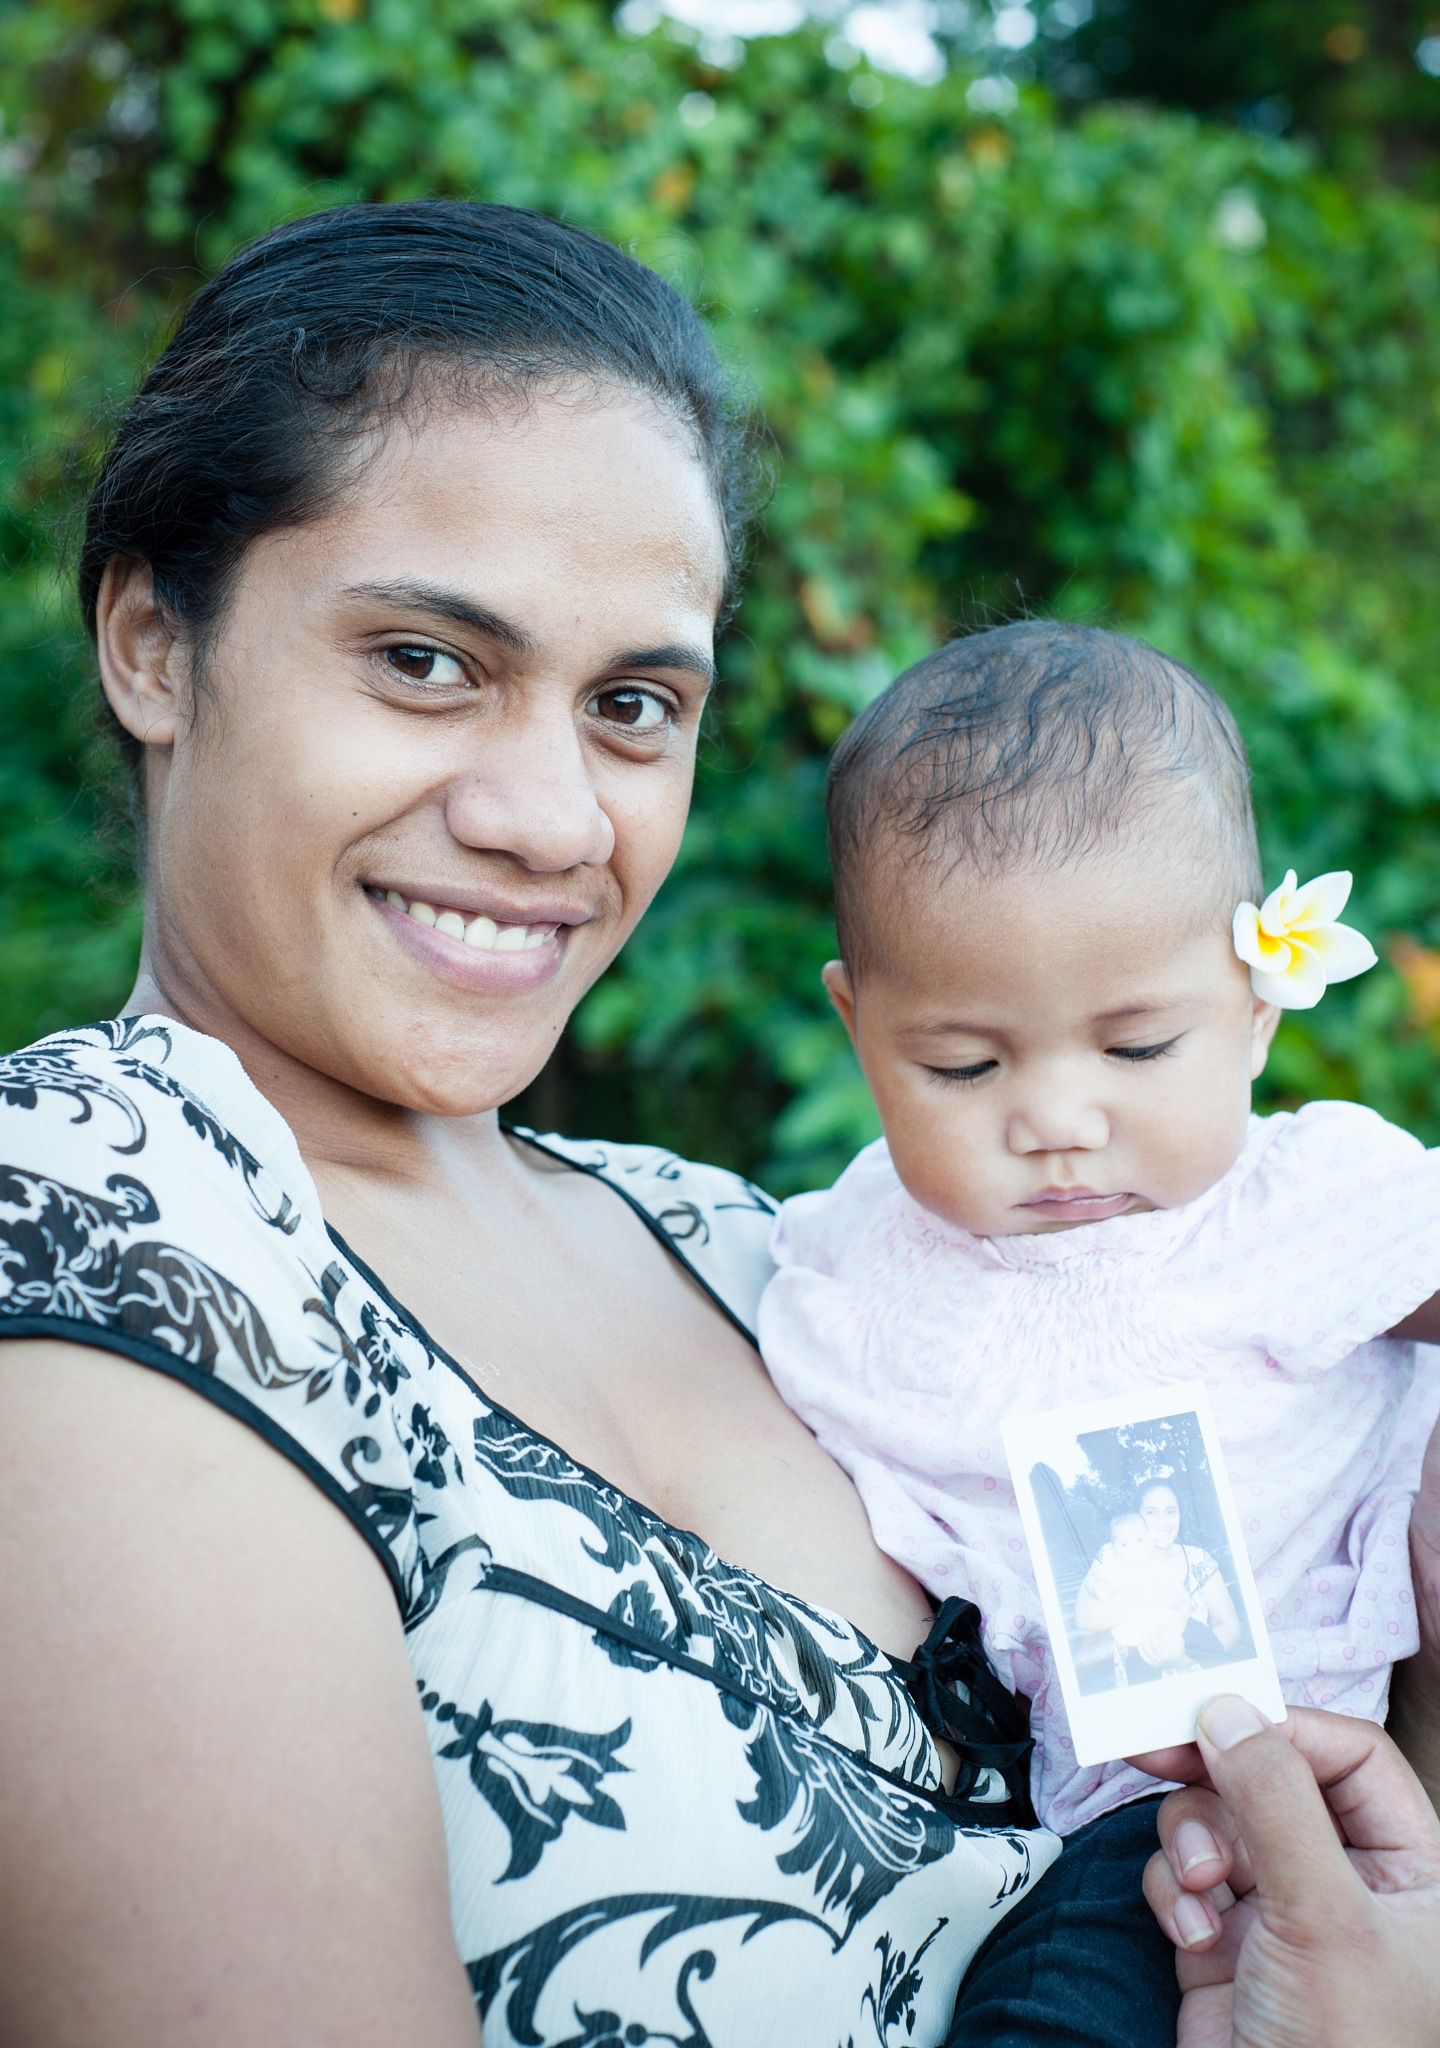 Mother and Child with Instax Print | Levuka | Fiji by DesiccatedLife